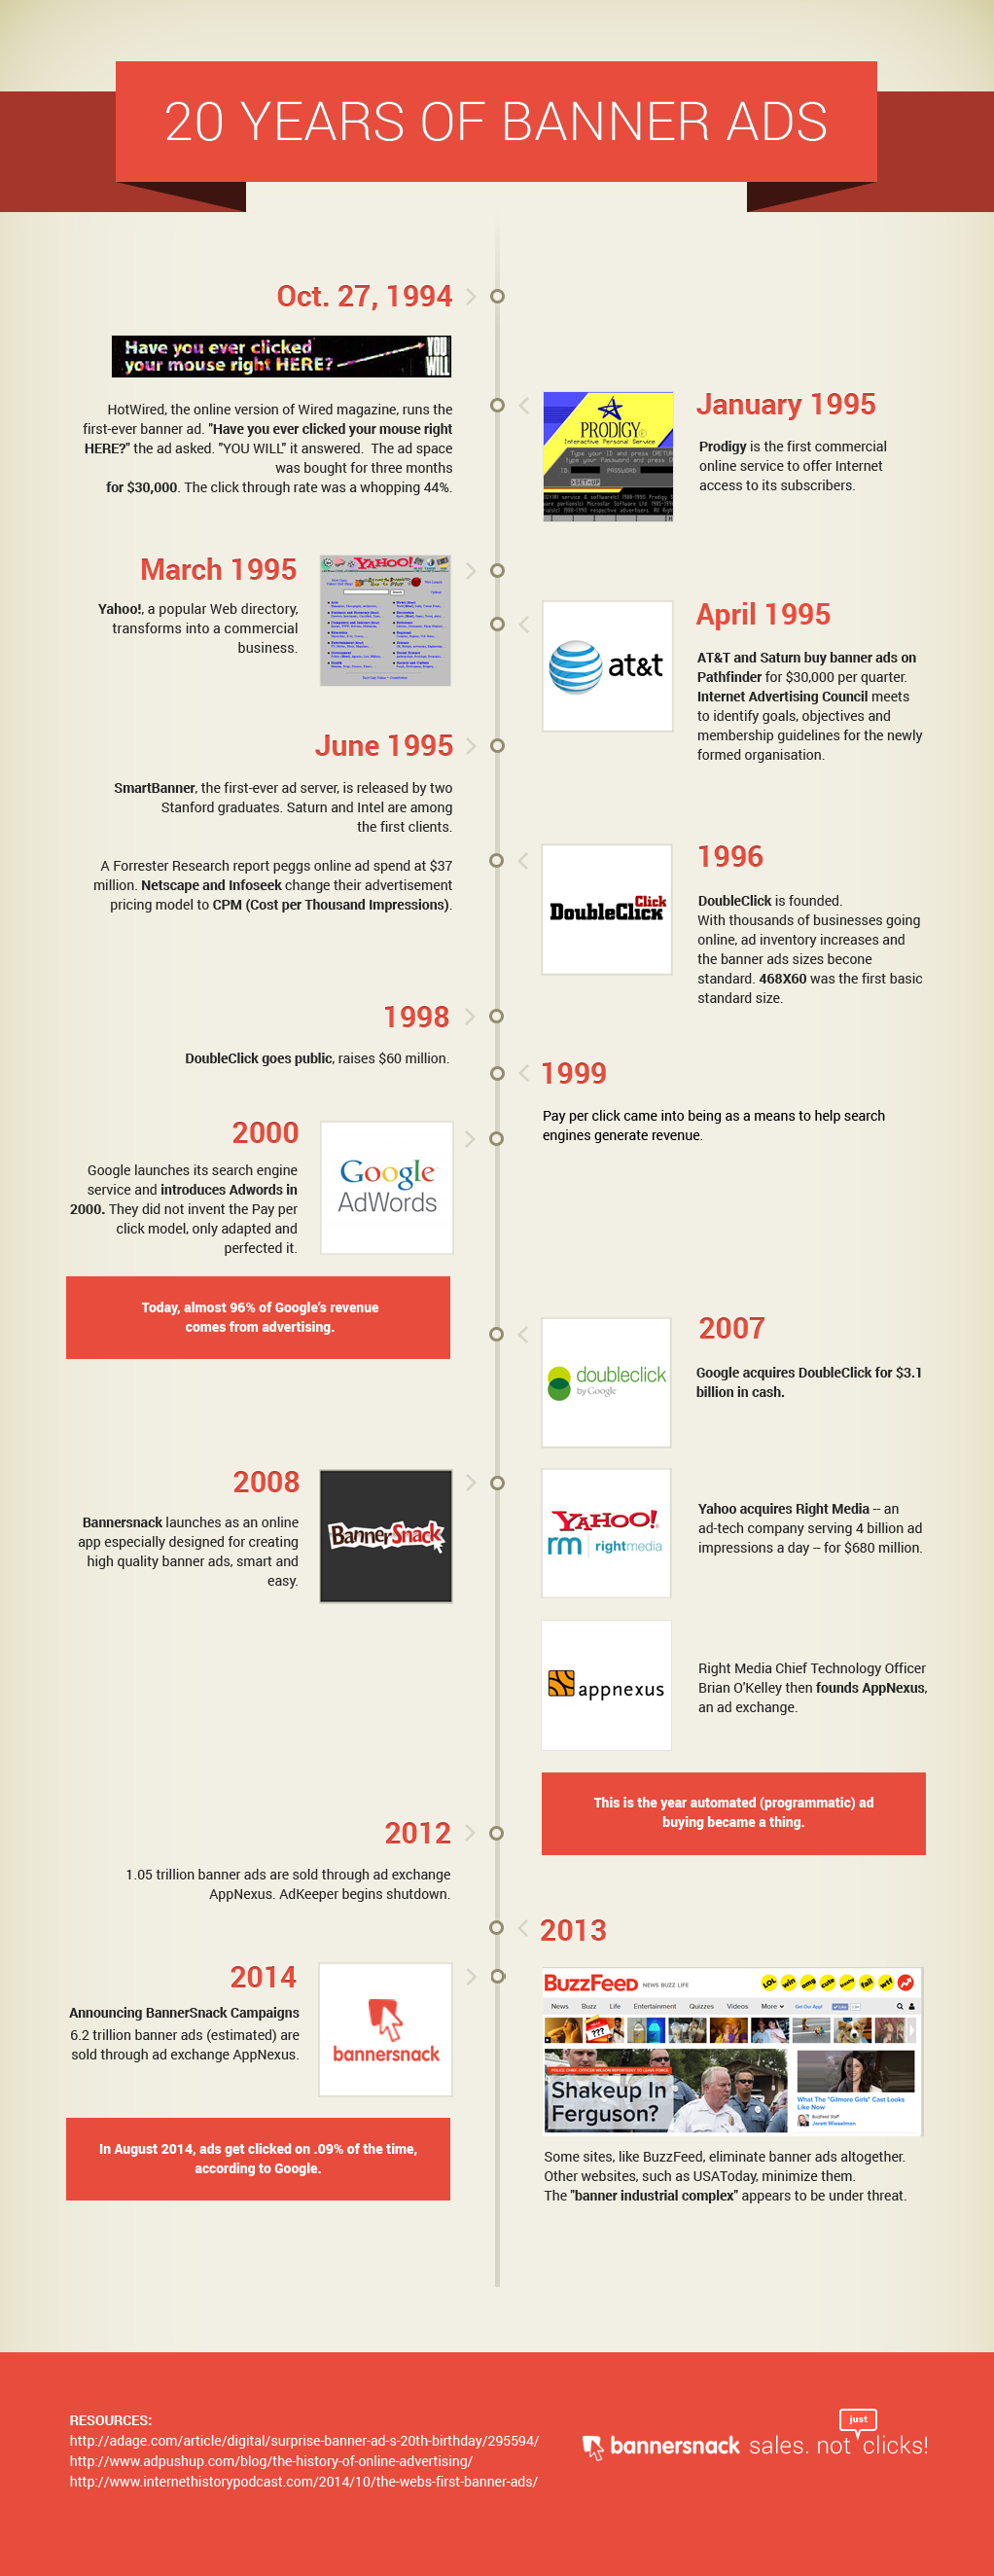 20 Years of Banner Ads Infographic